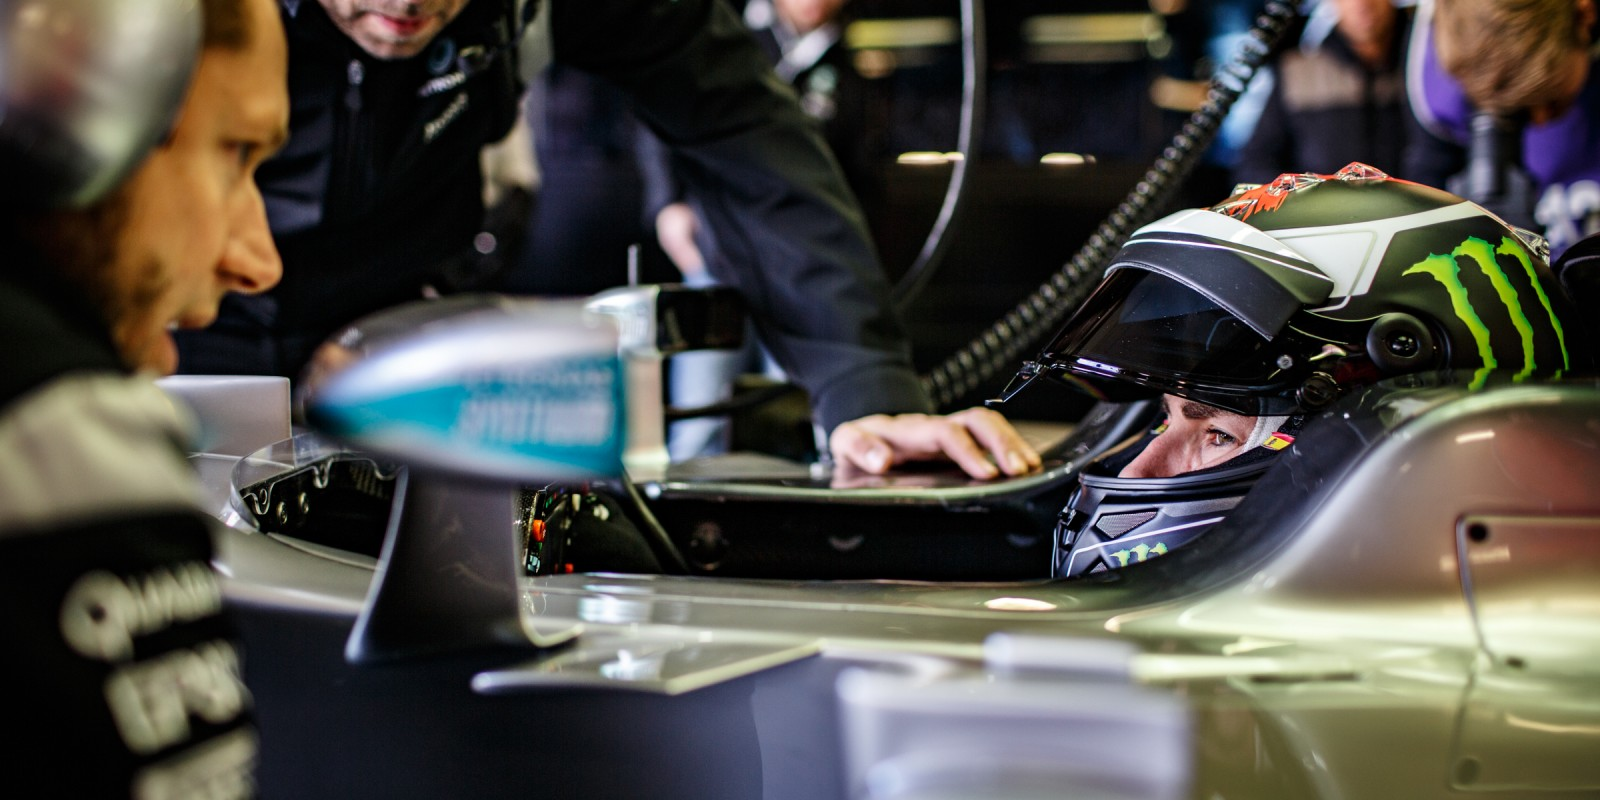 Images of Jorge Lorenzo testing the MERCEDES AMG PETRONAS Formula One F1 W05 at Silverstone